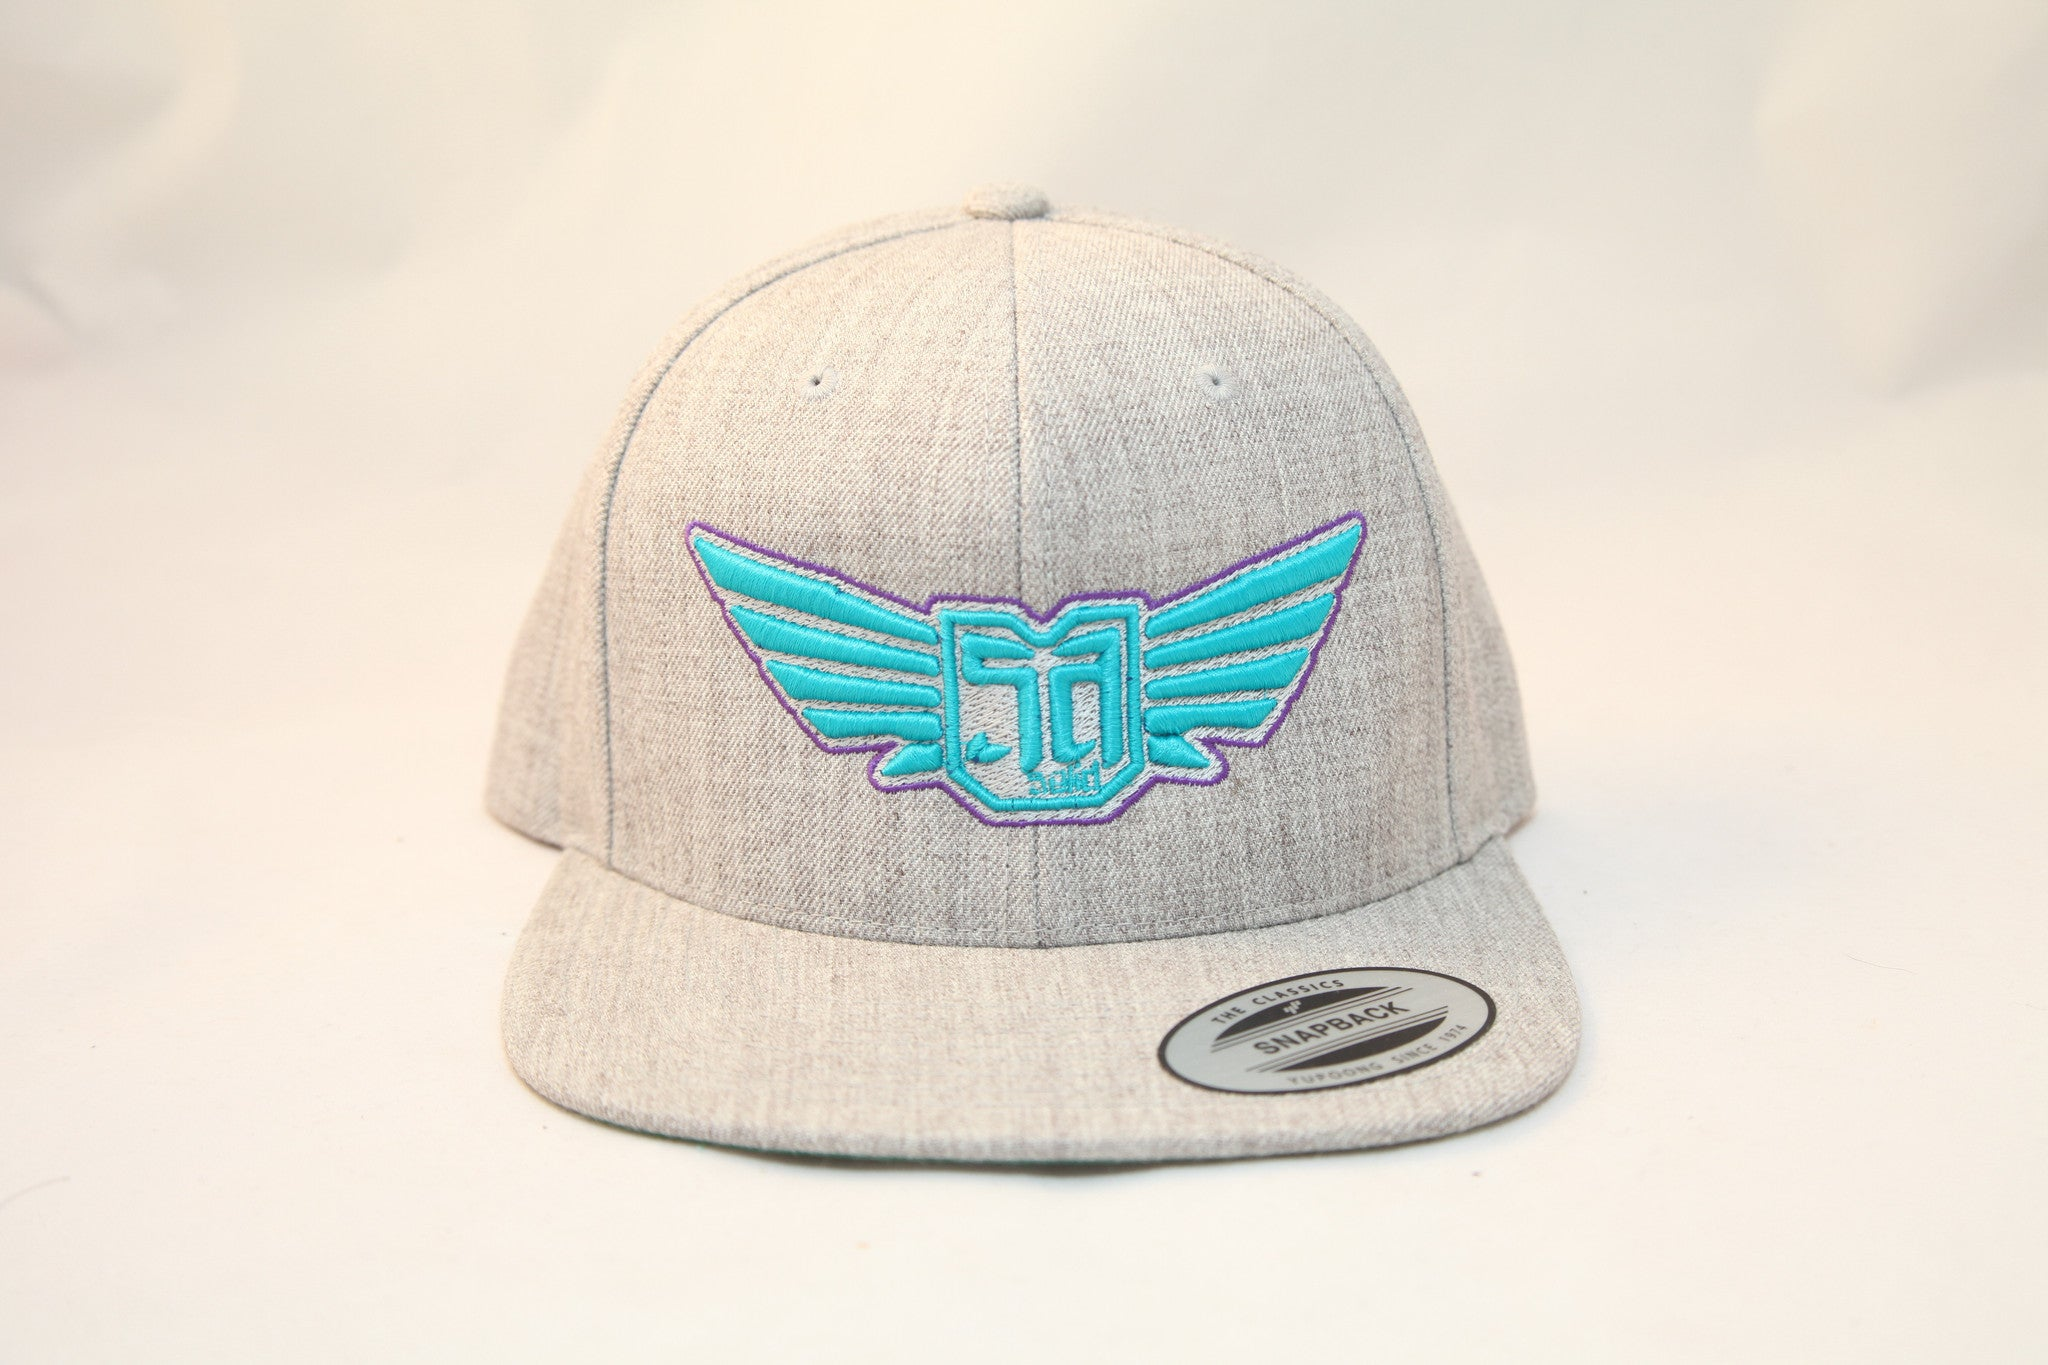 AV8 - FLEXFIT SNAP BACK HAT - ASH GREY - CYN / PRL LOGO